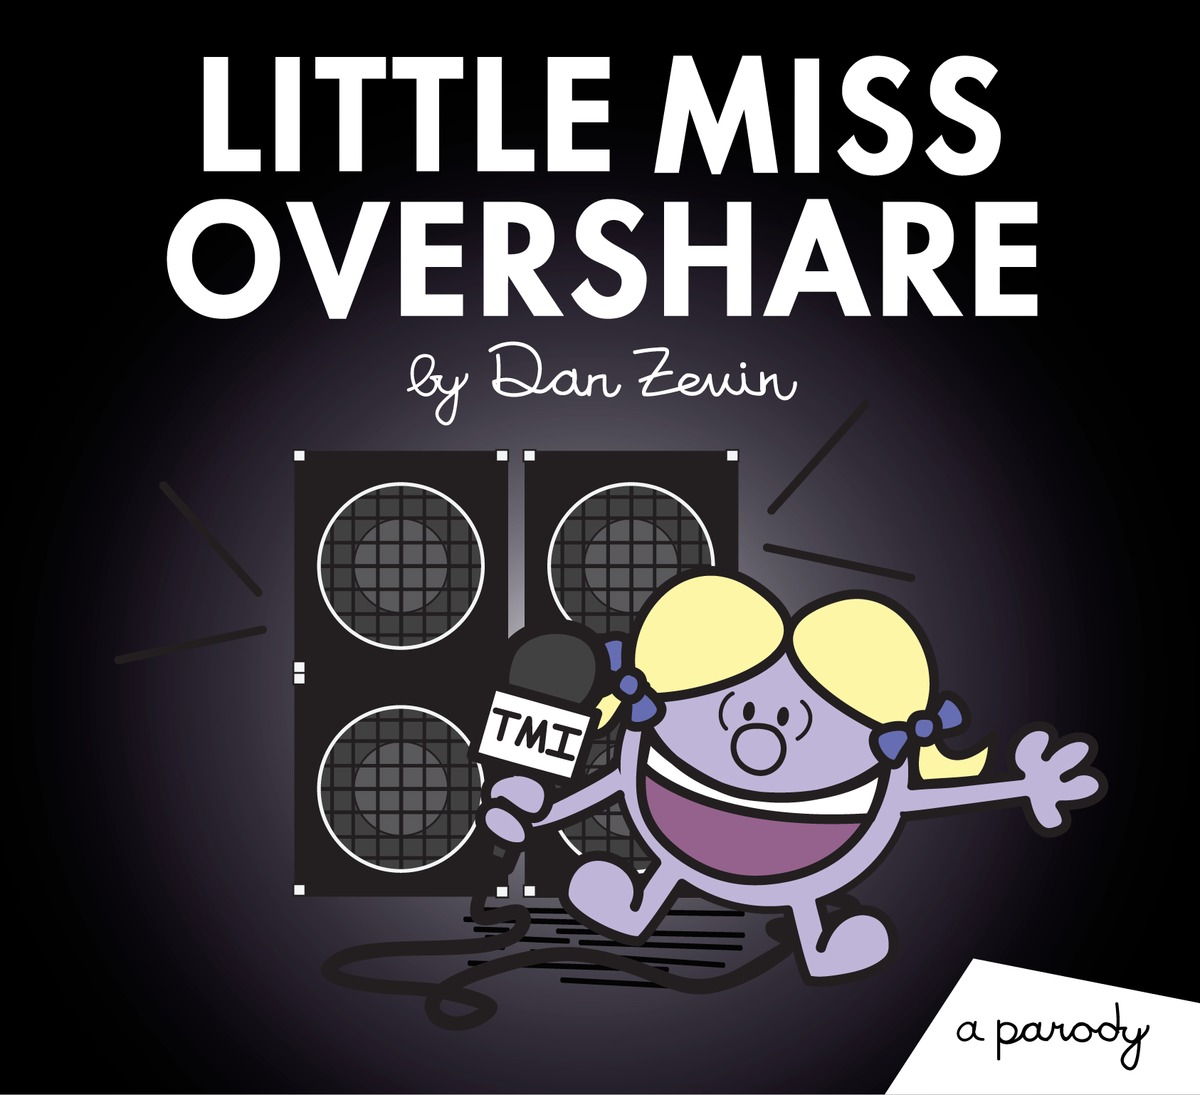 LITTLE MISS OVERSHARE little miss fun